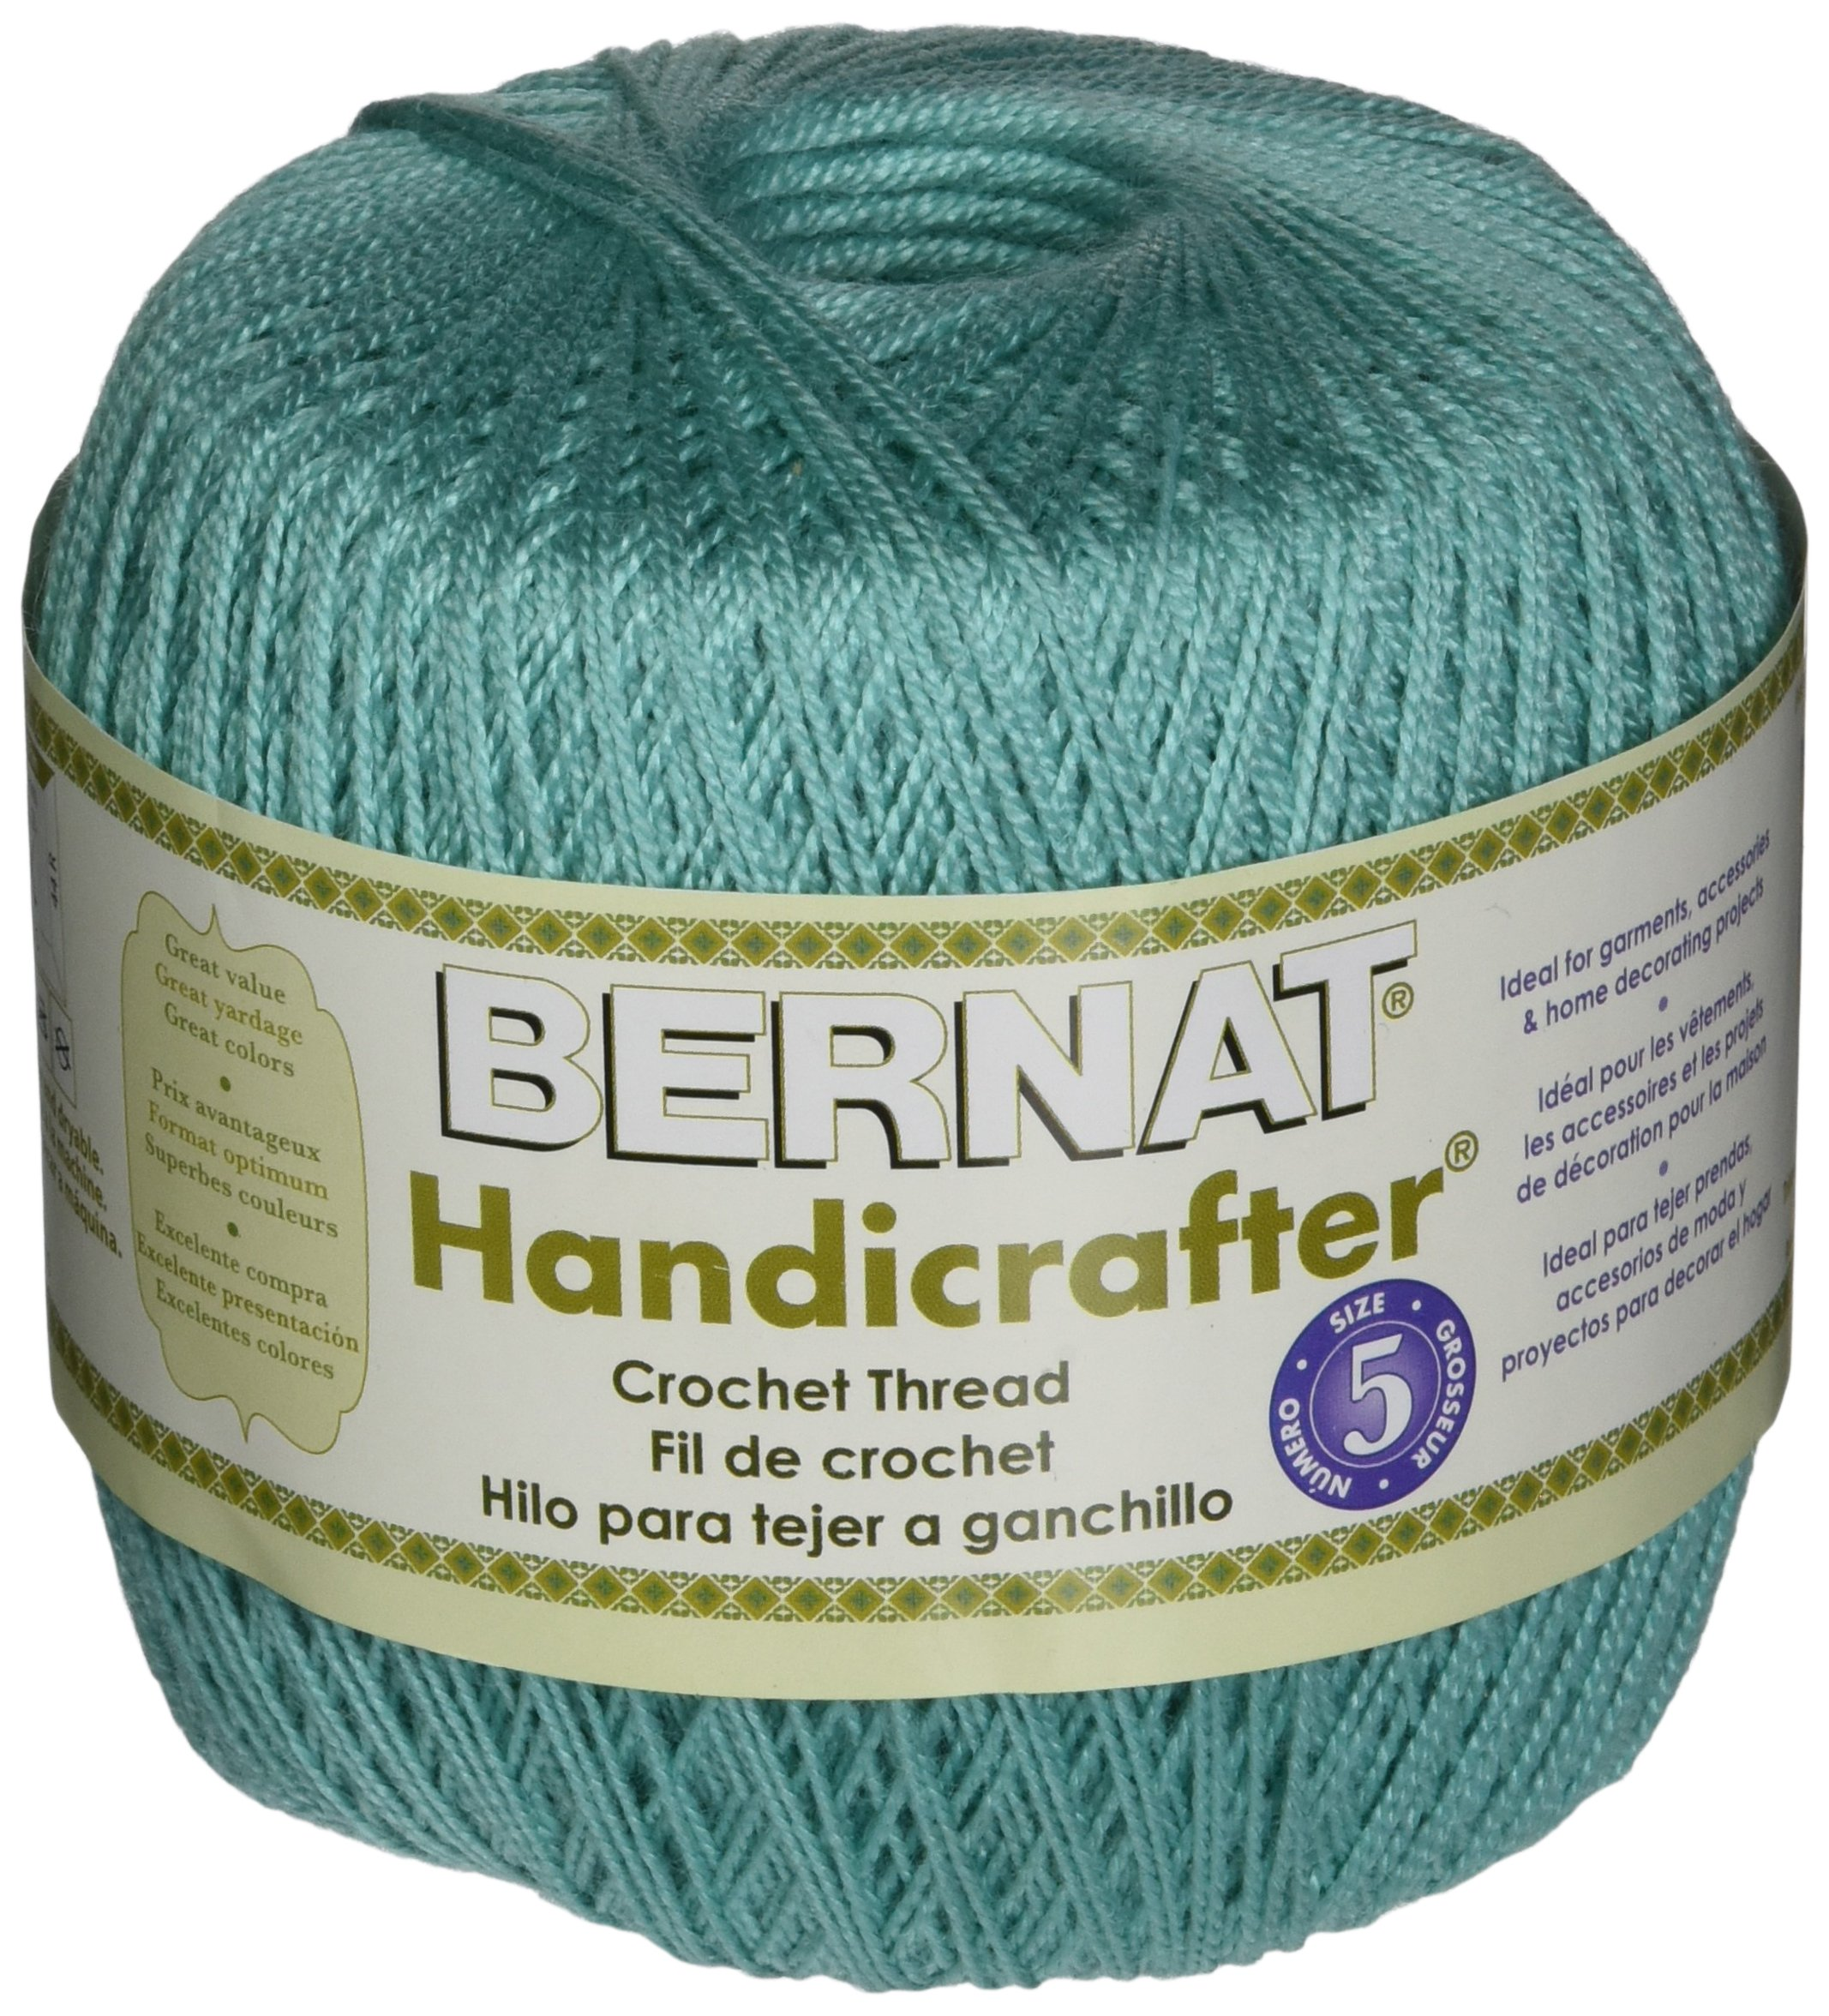 Cheap Size 5 Crochet Thread Find Size 5 Crochet Thread Deals On